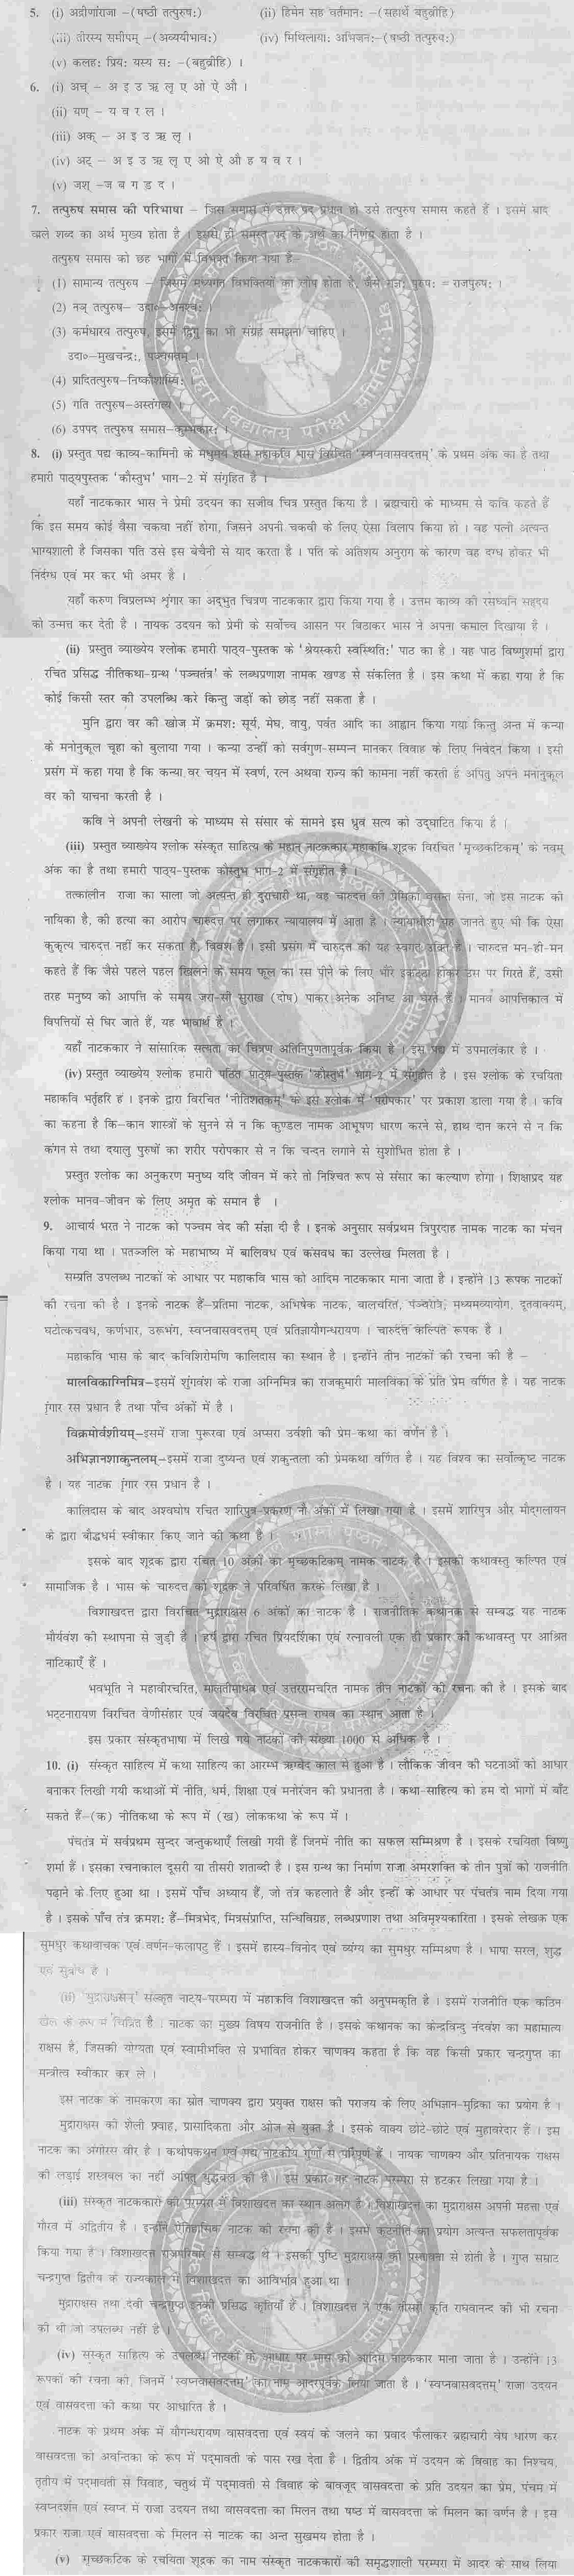 Bihar Board Class XII Humanities Model Question Papers - Sanskrit